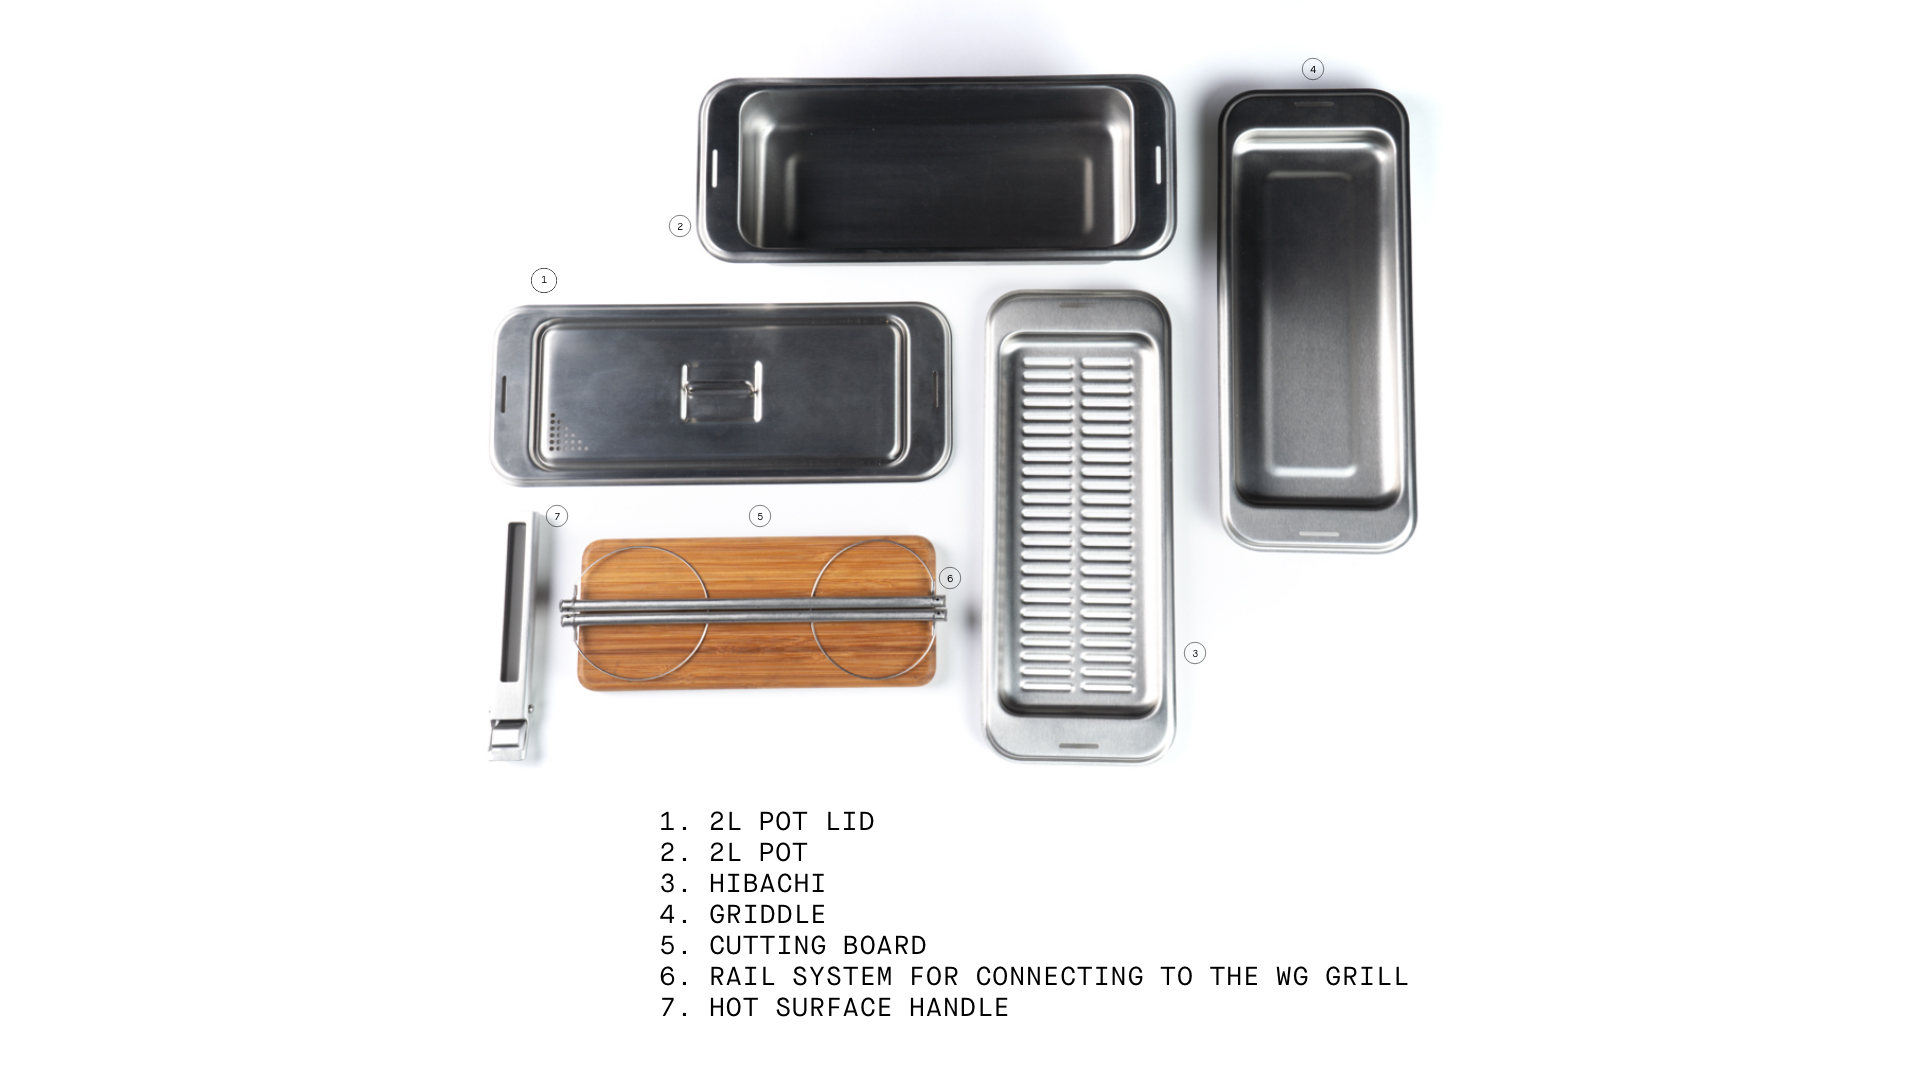 Cook Set kit contents